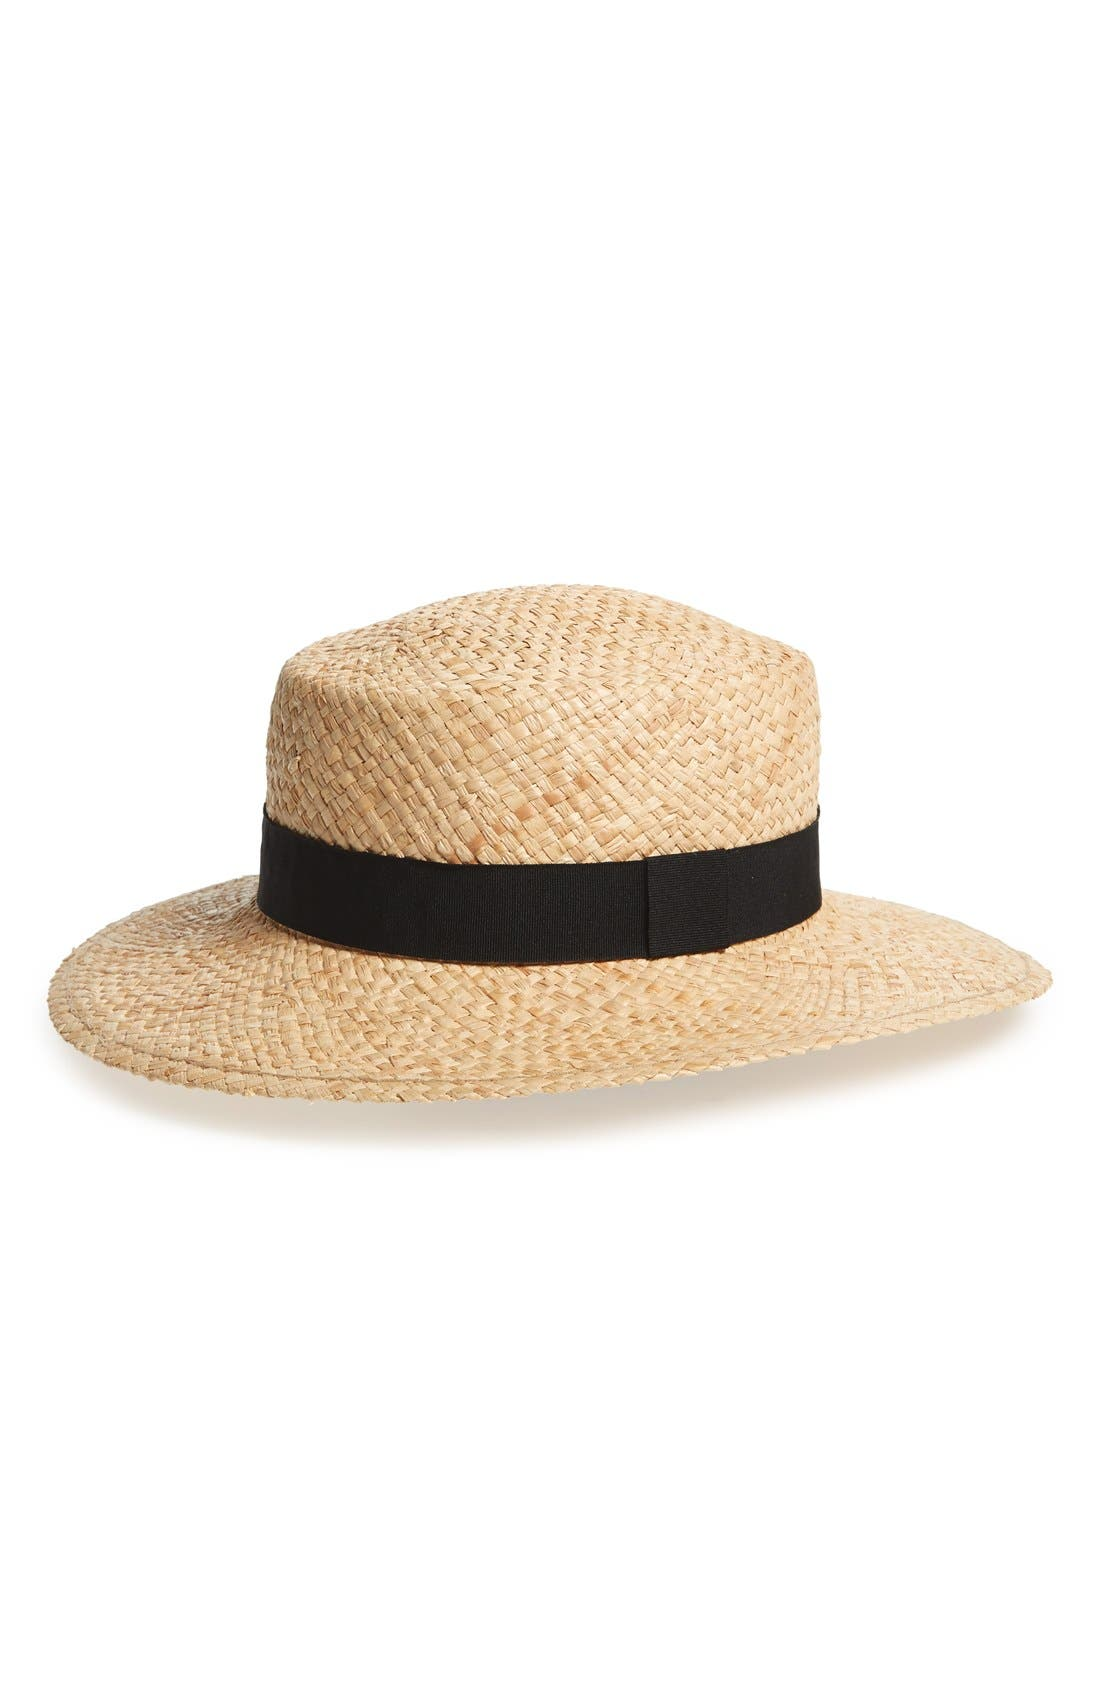 Main Image - BP. Woven Raffia Boater Hat